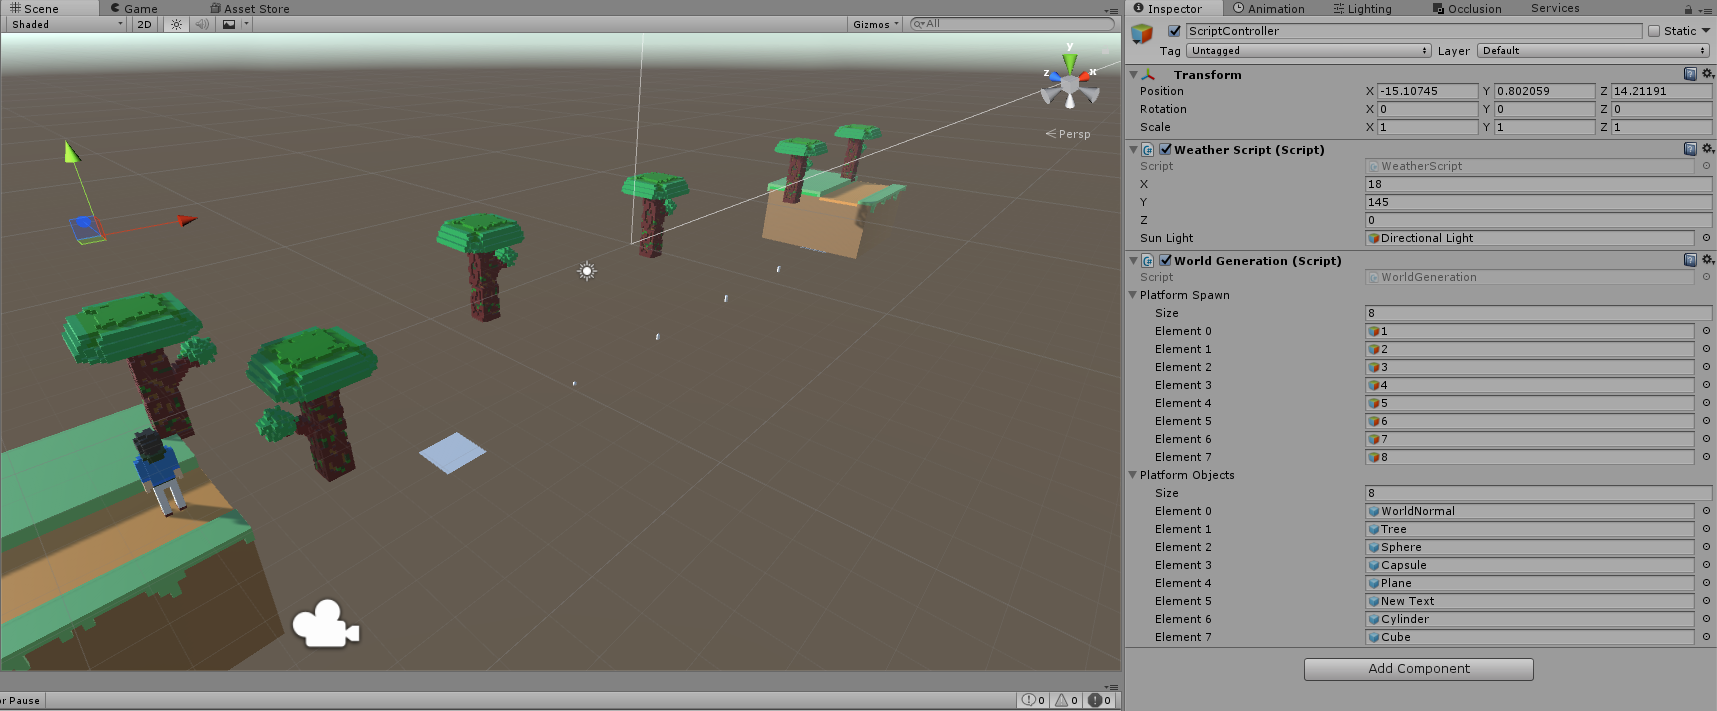 Celestial Sounds: 3D Modelling and Procedural Generation